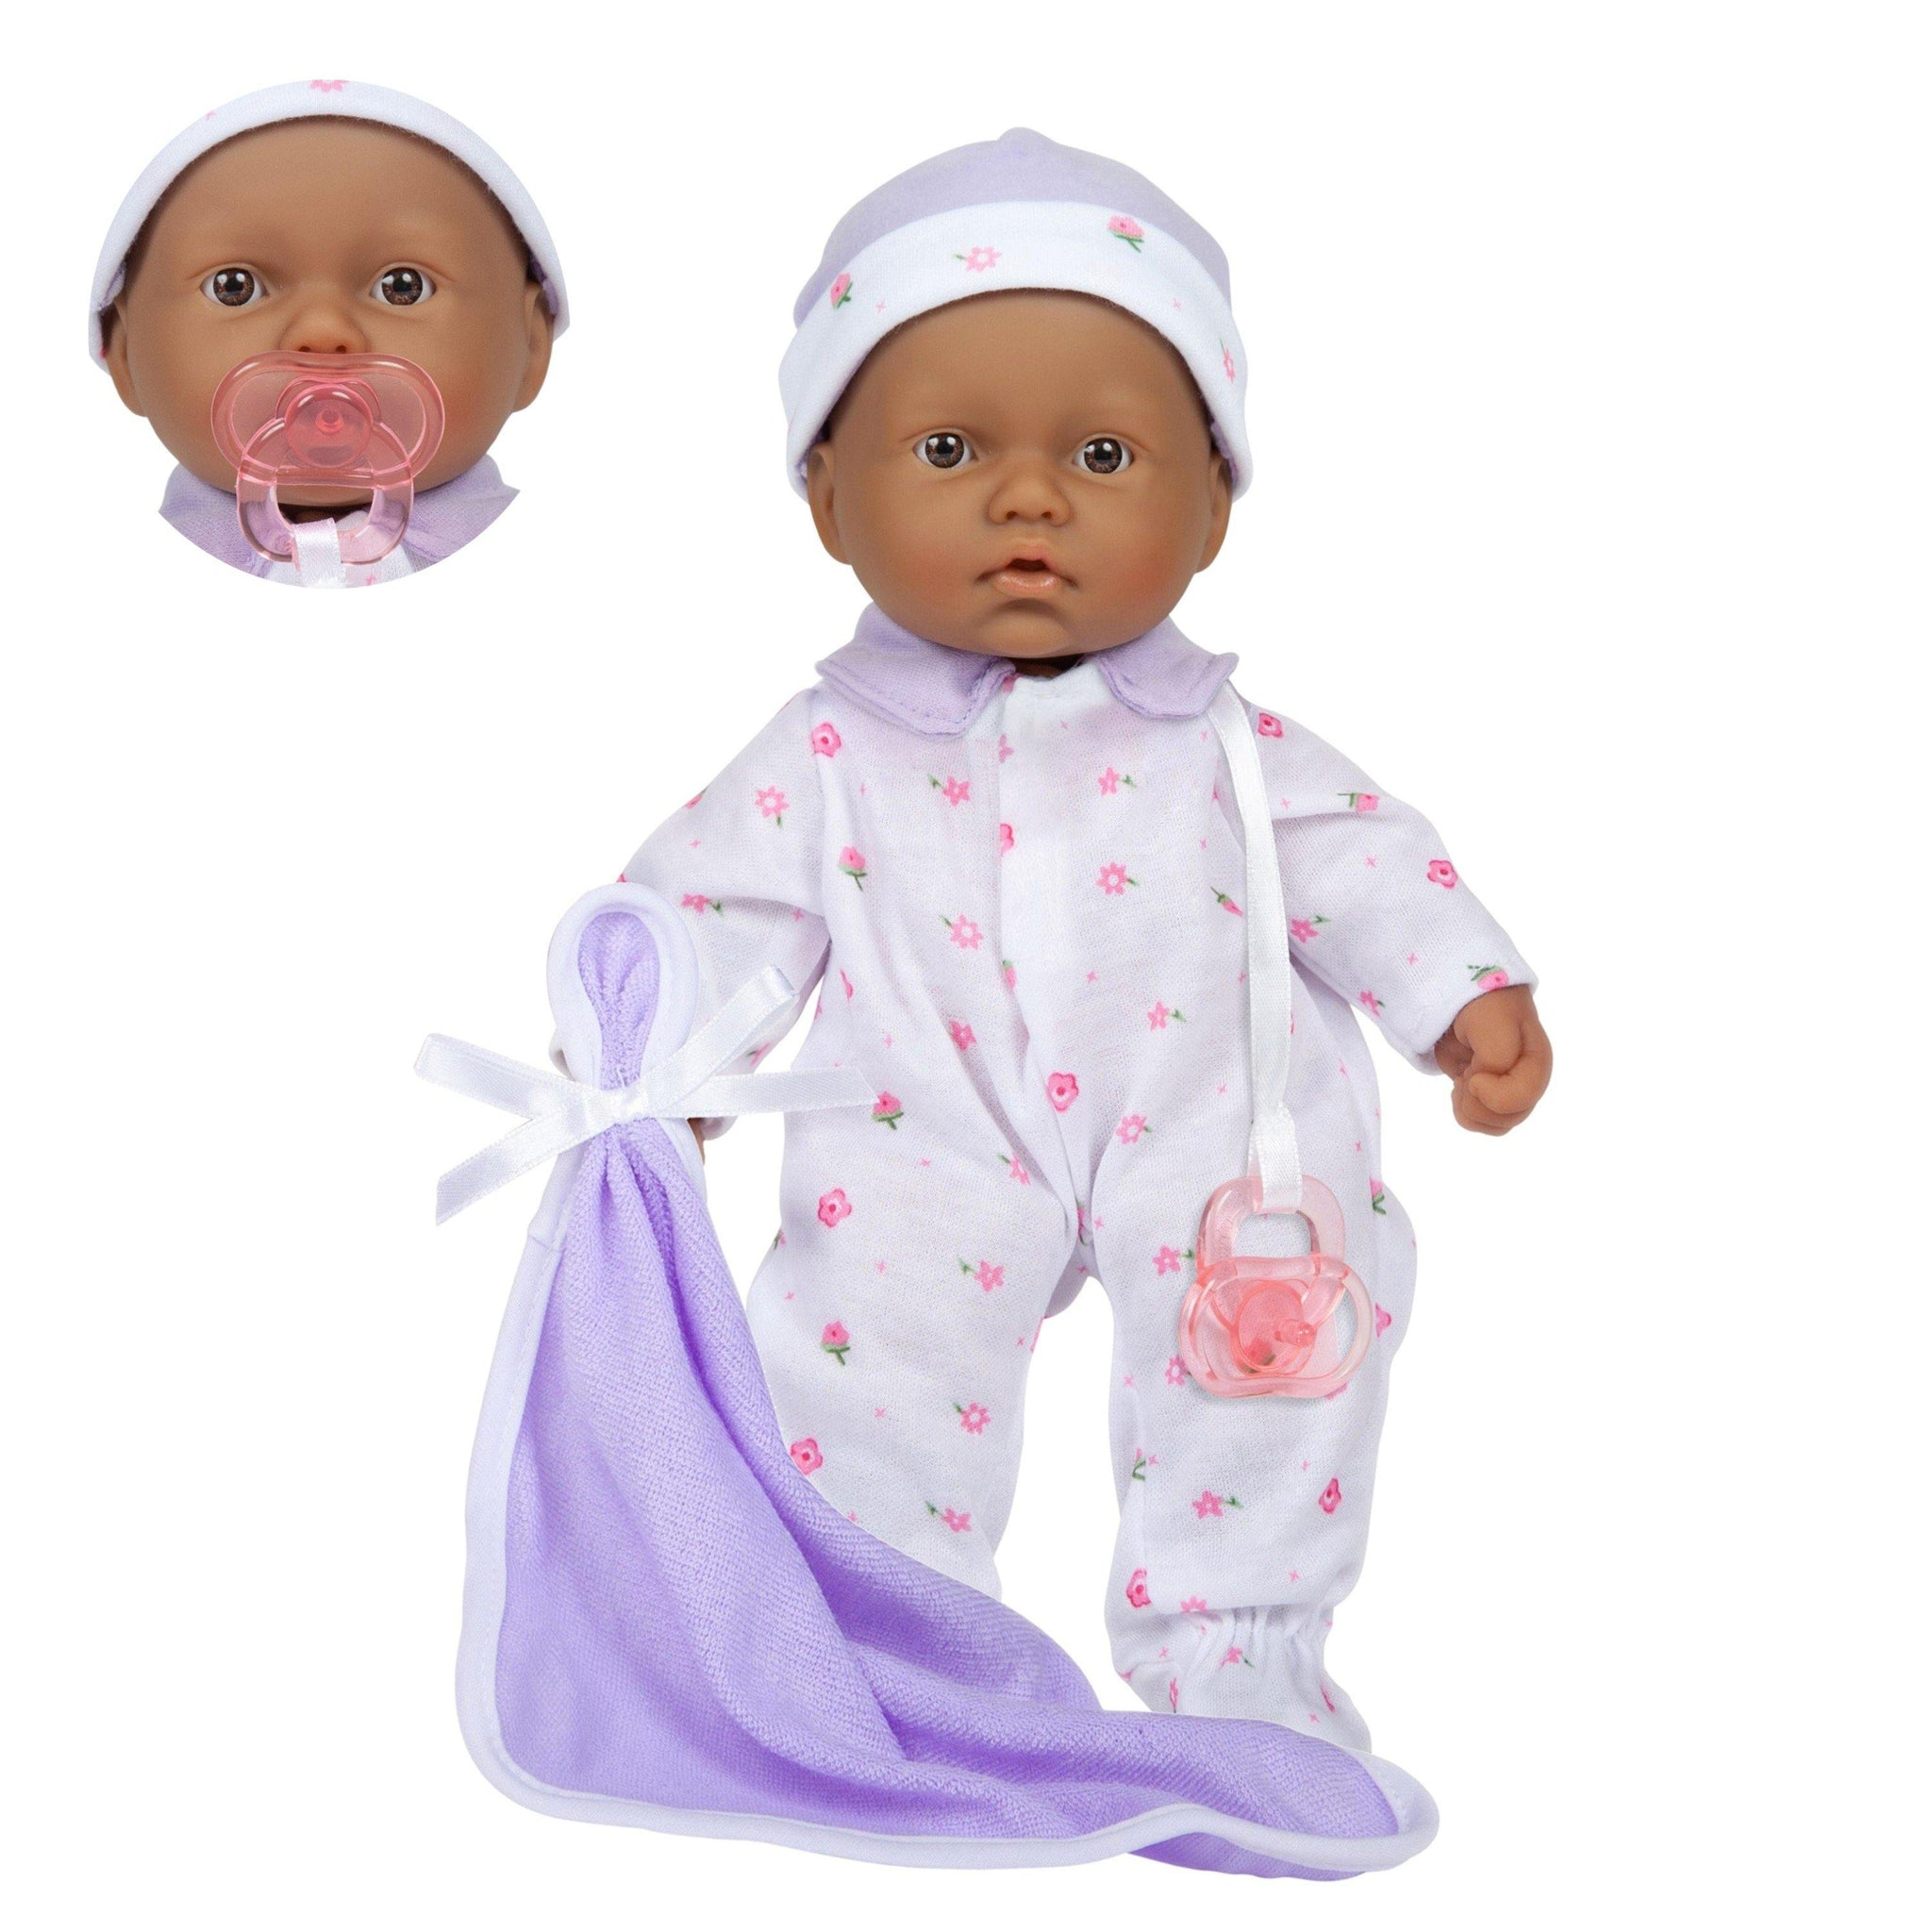 JC Toys, La Baby 11 inch Soft Body Hispanic Baby Doll in Purple Outfit